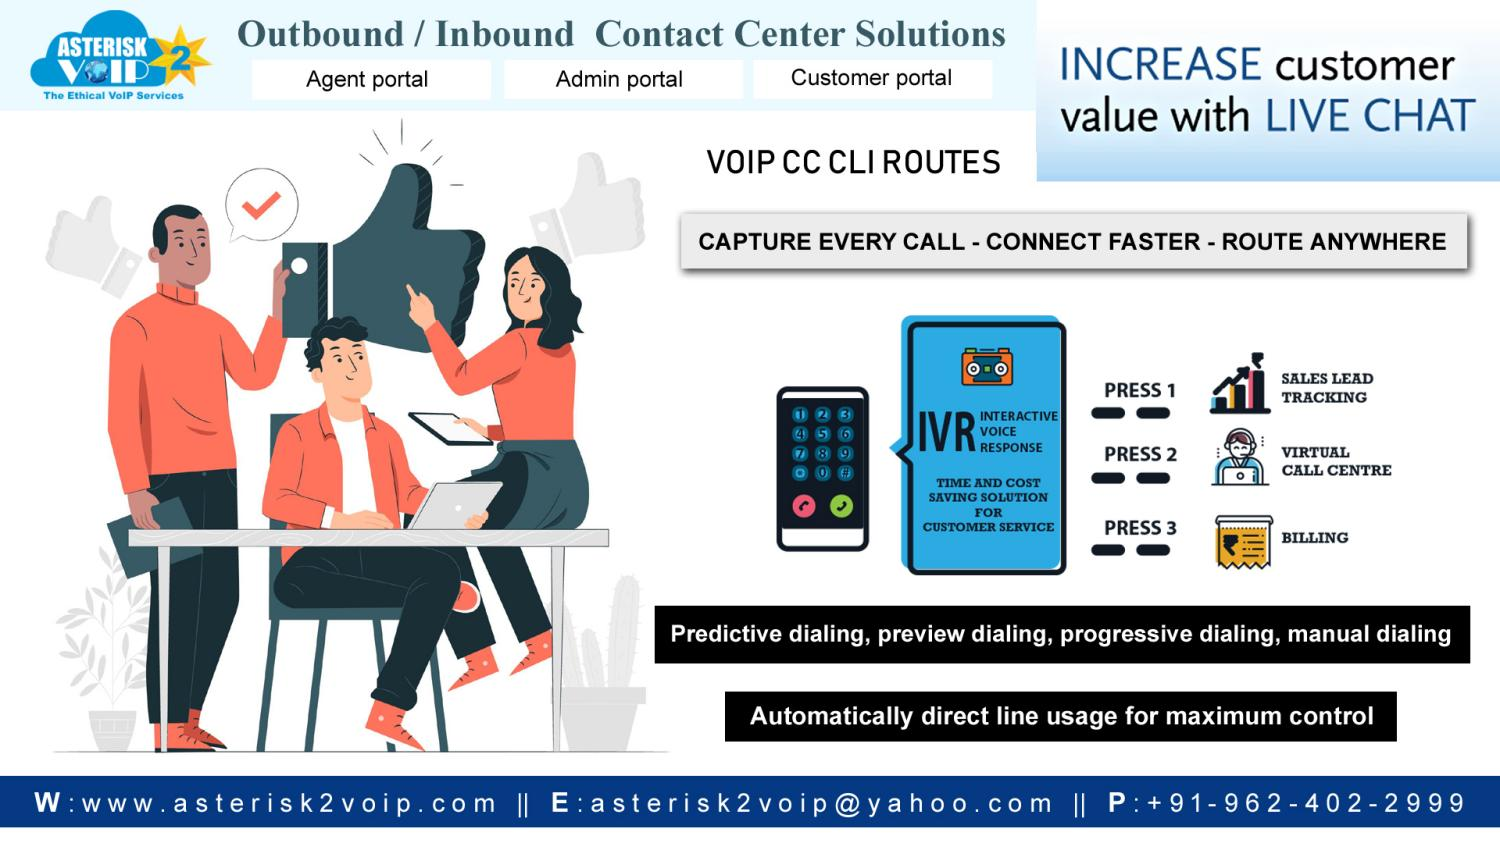 Guaranteed Quality Of Service - Asterisk2voip Technologies.